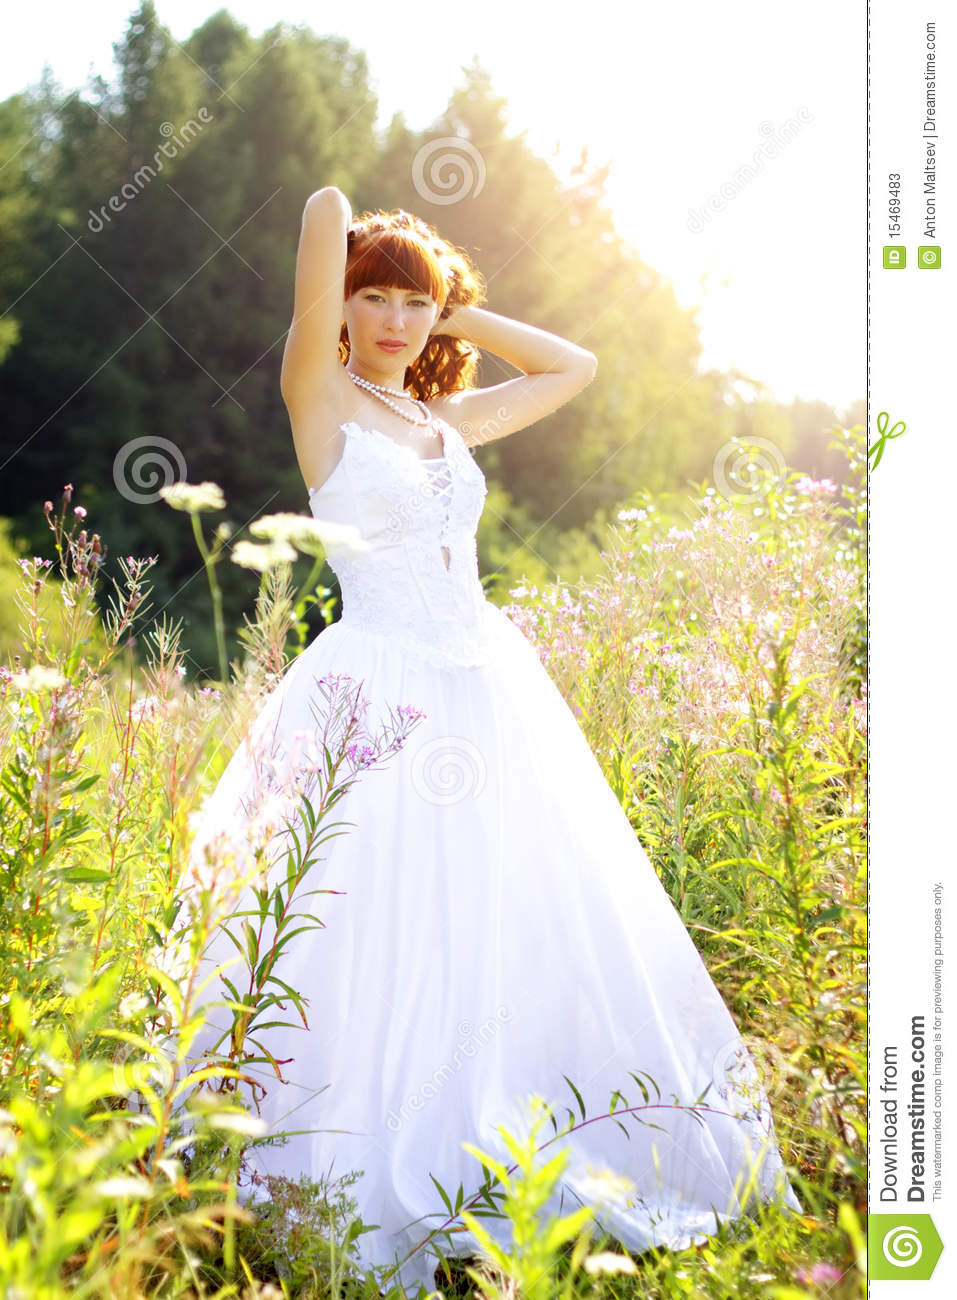 Bride In A Wedding Dress On The Nature Stock Image